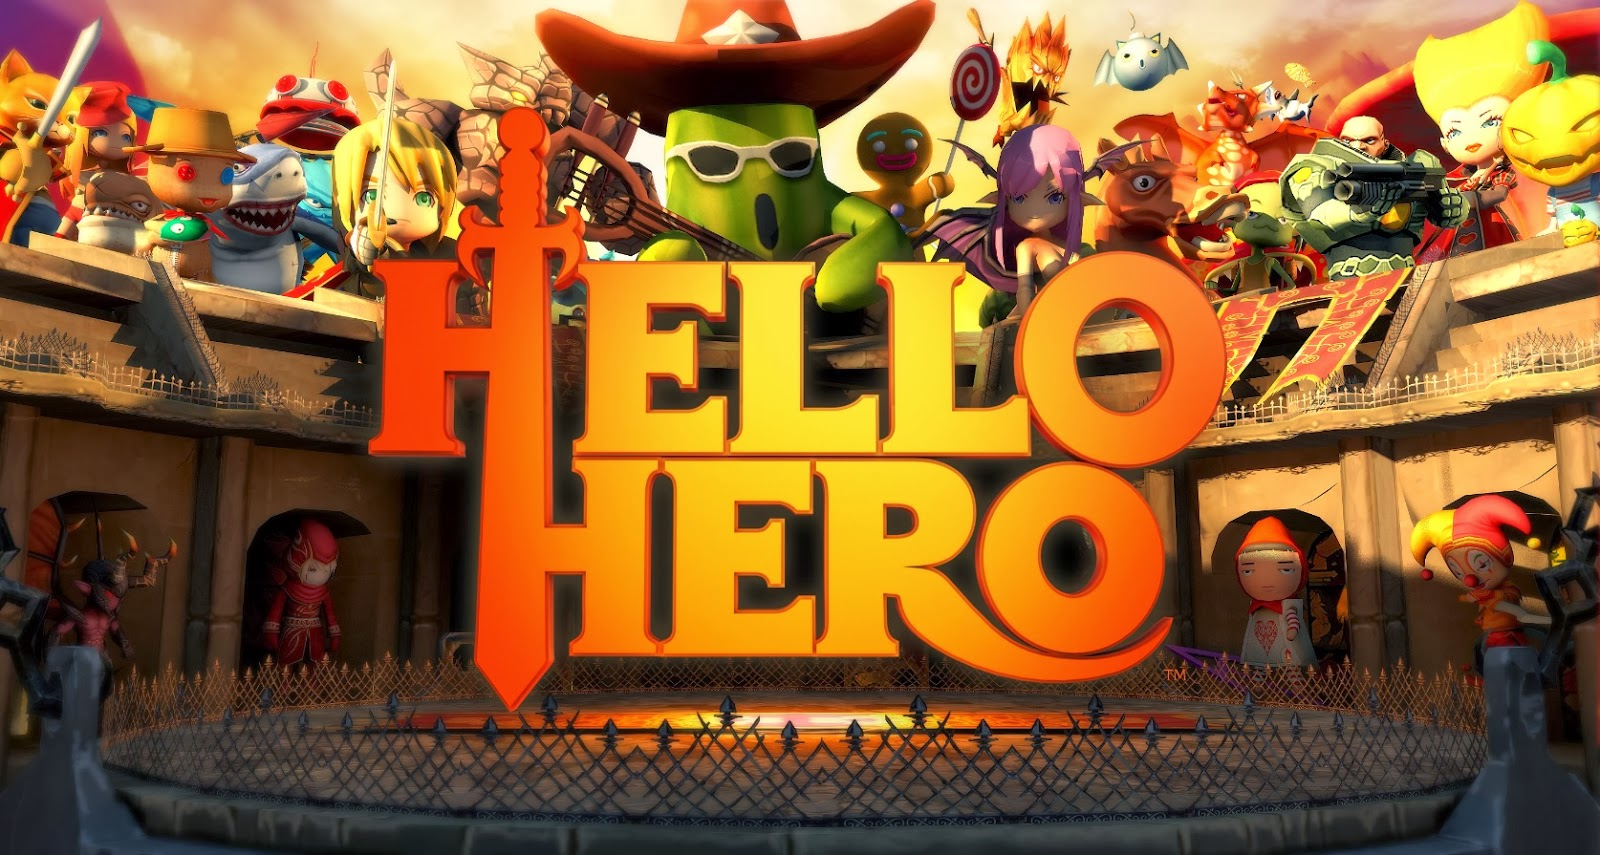 Posted by GM hello hero coupon code; Searching